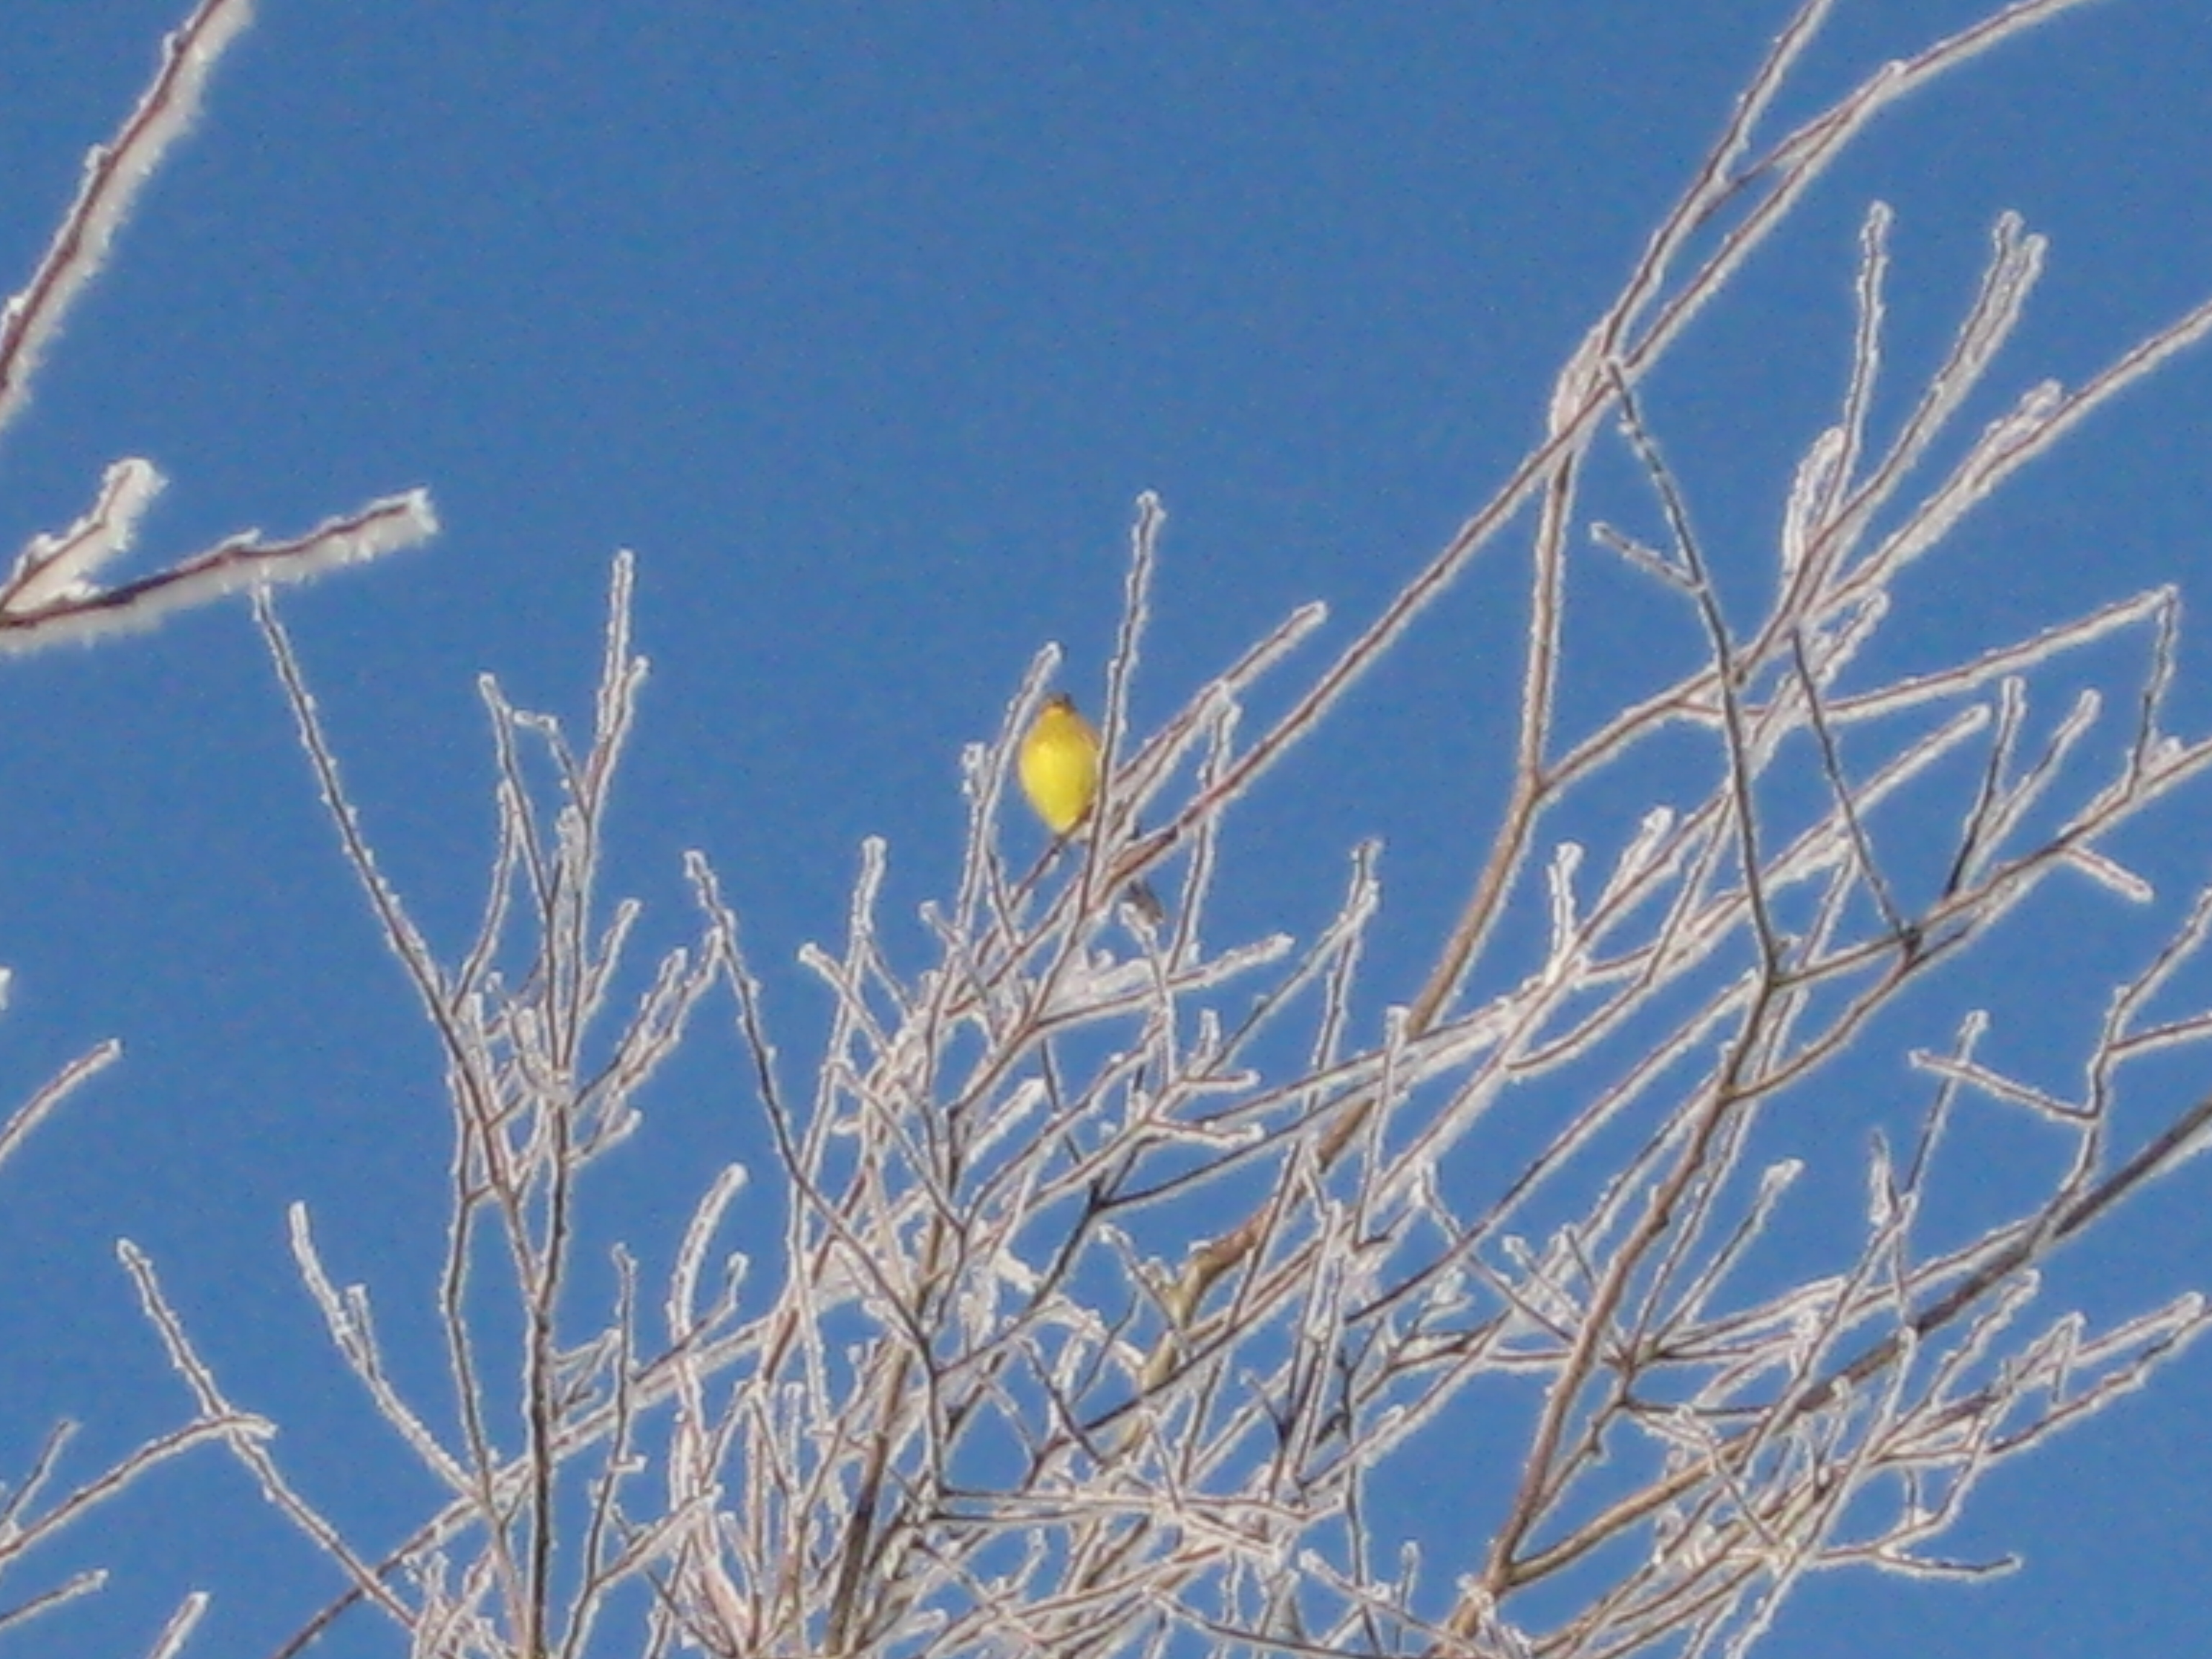 Yellowhammer in a frosty tree